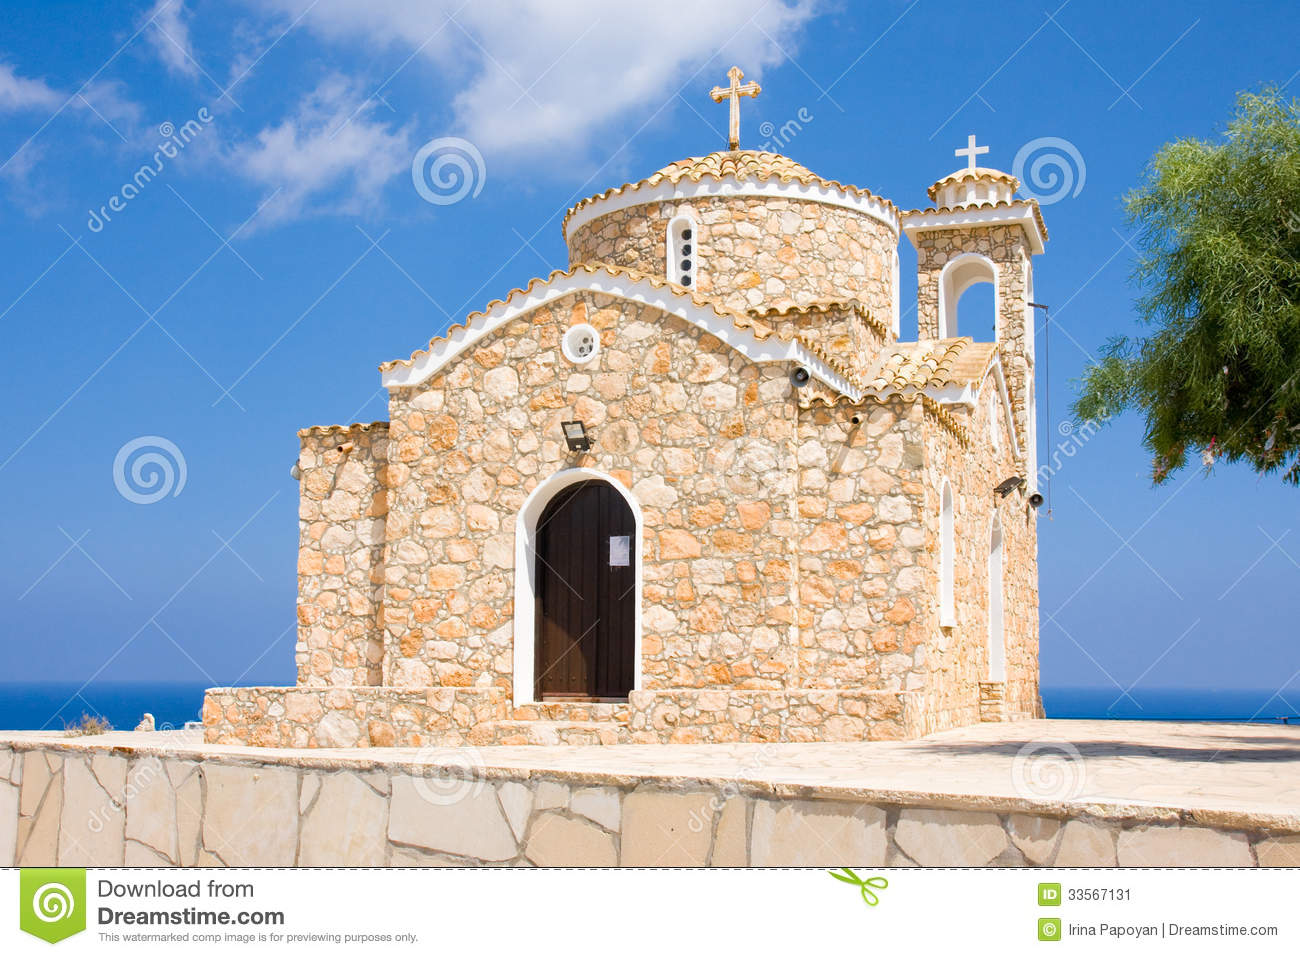 Charming Rock Church Locations #1: Church-ayios-ilias-protaras-famagusta-district-cyprus-ancient-orthodox-temple-xiv-century-top-small-hill-33567131.jpg